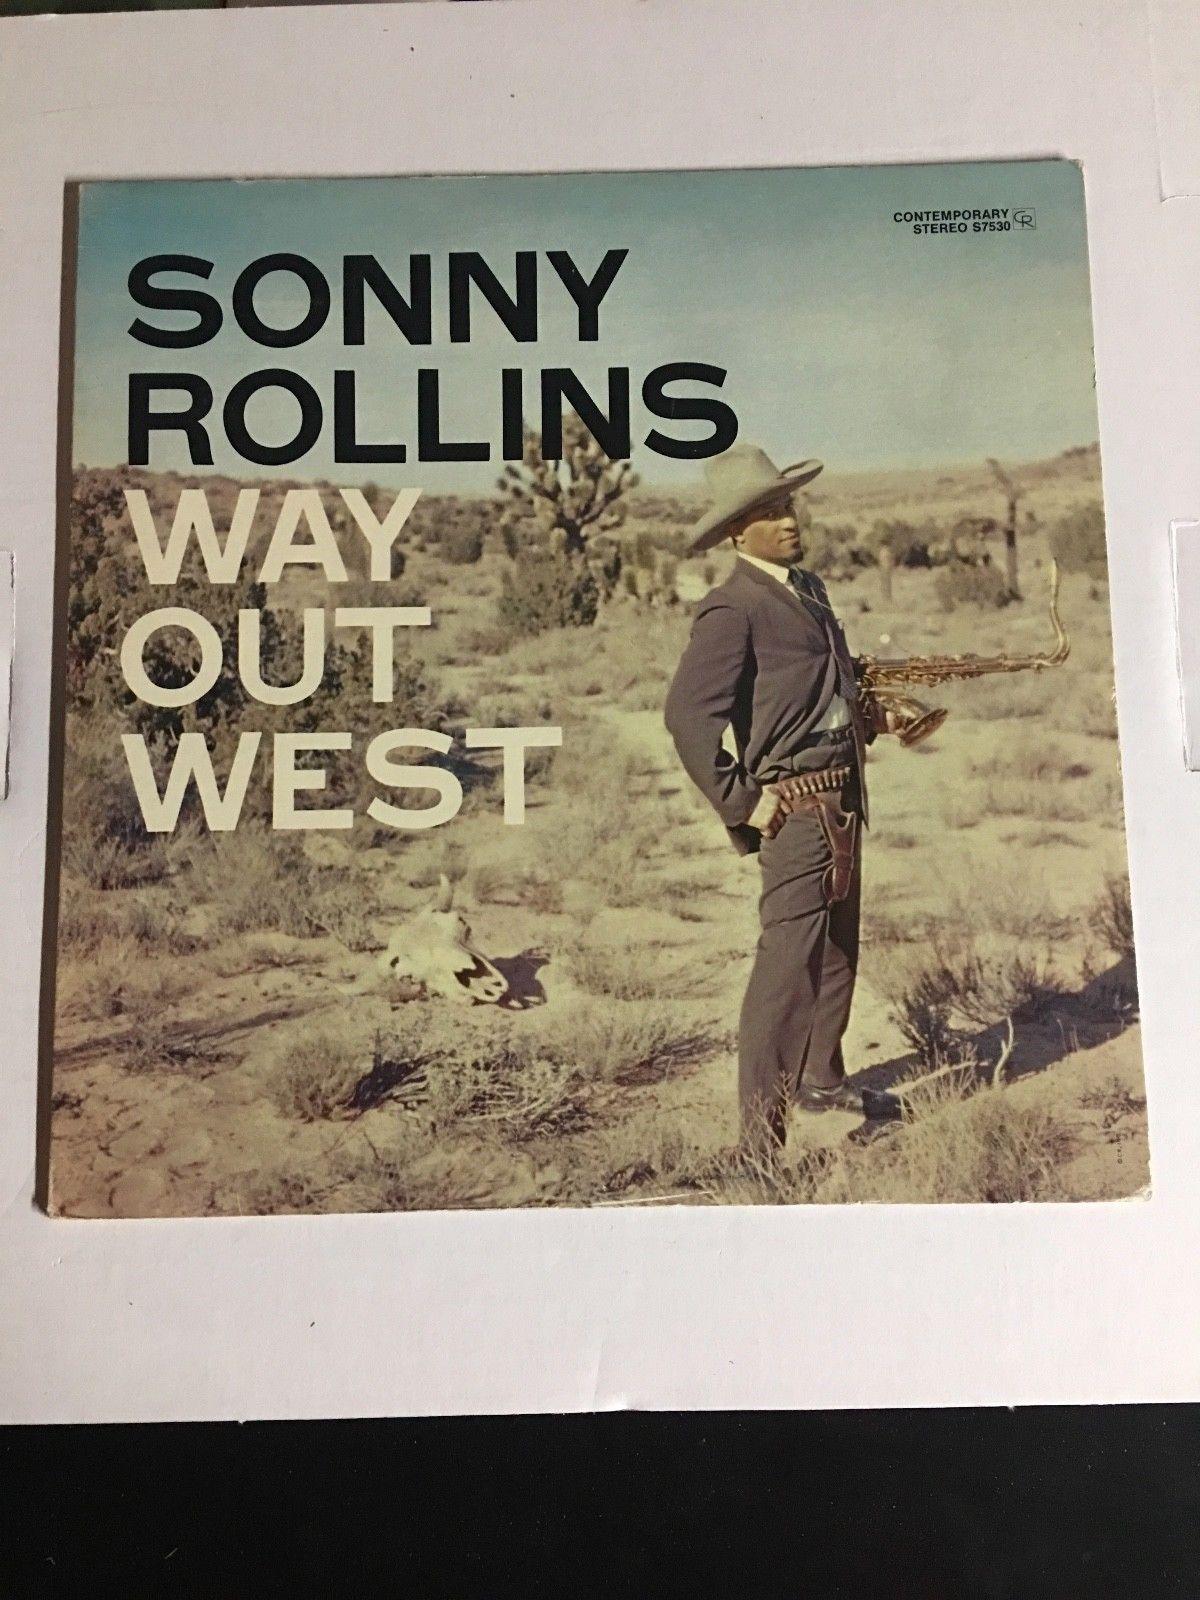 Sonny Rollins Way Out West LP On Contemporary S7530